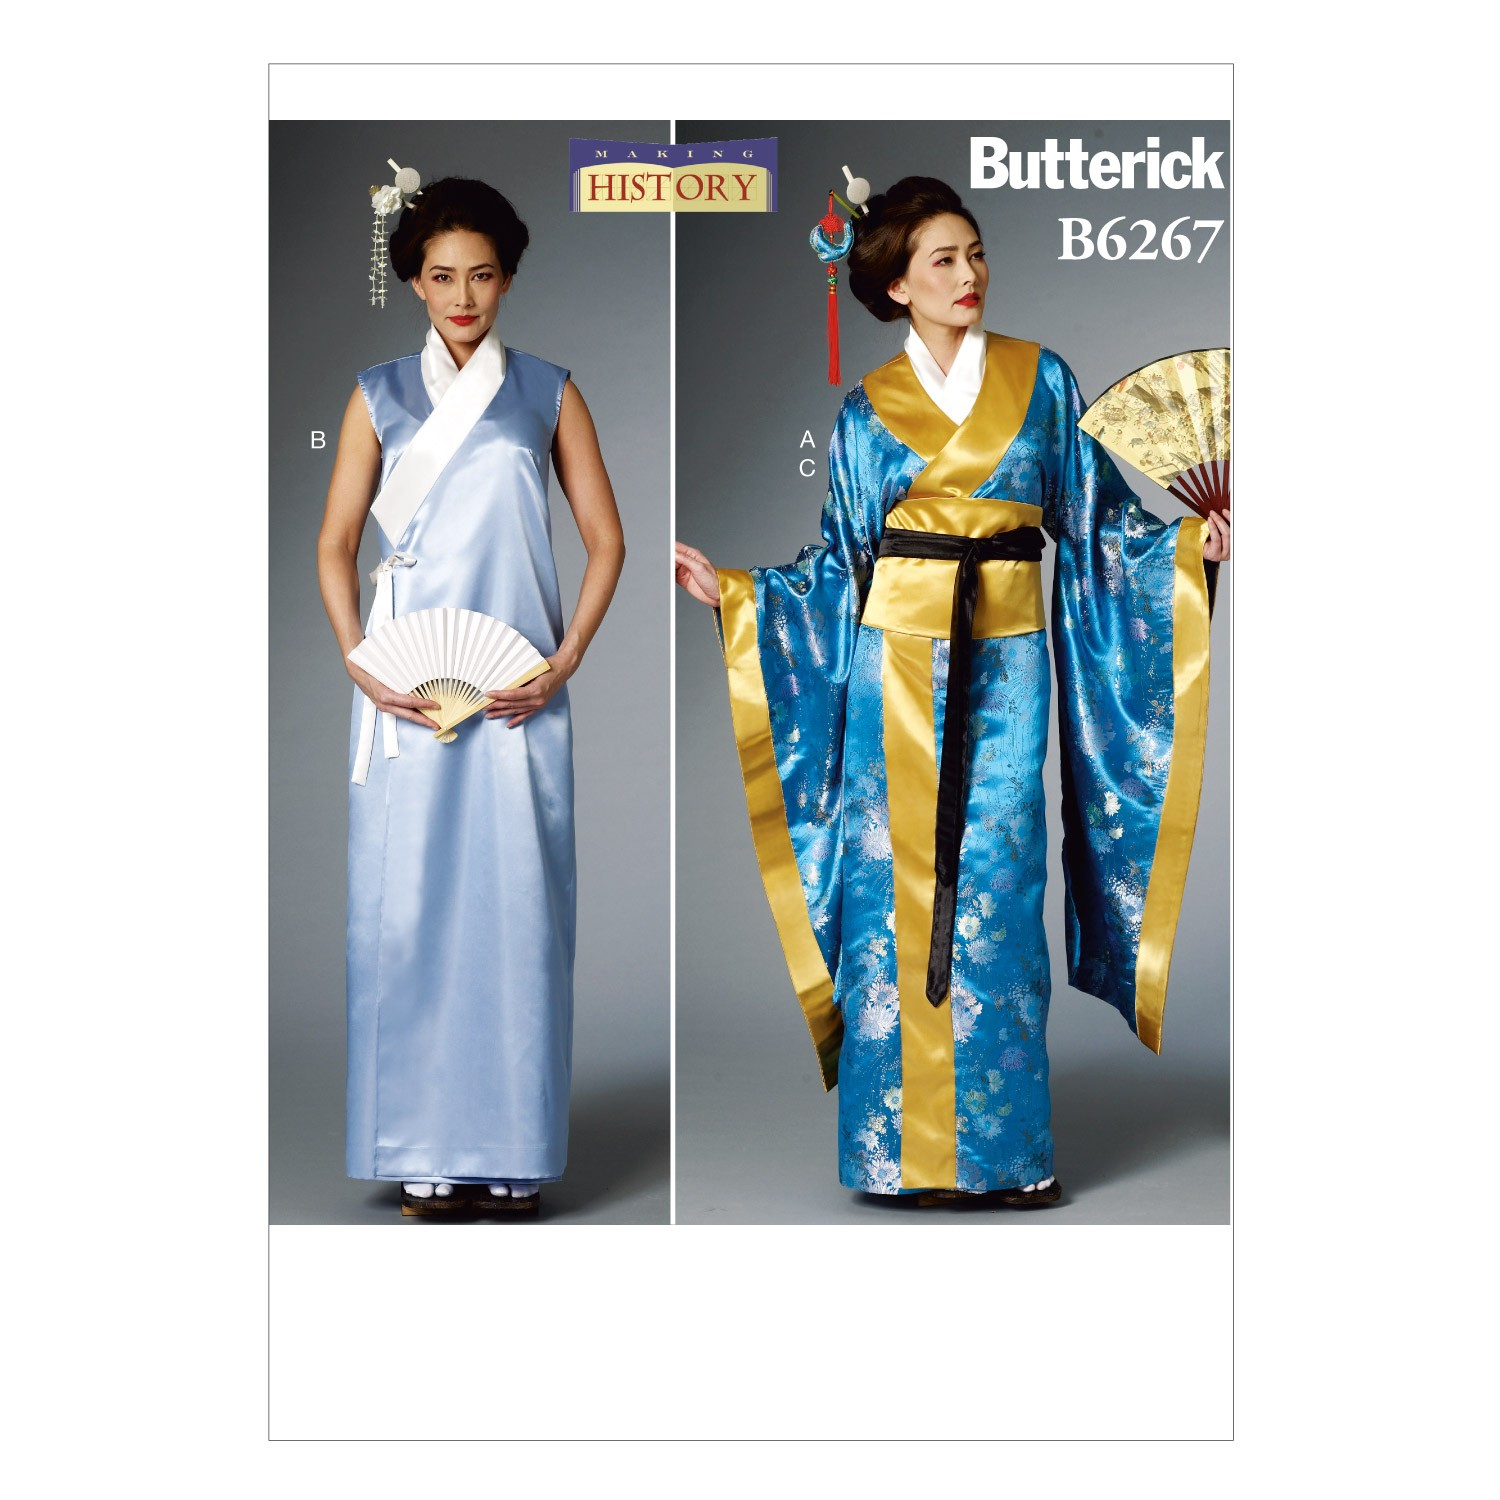 Butterick Sewing Pattern 6267 Misses' Japanese Kimono Historic Costume